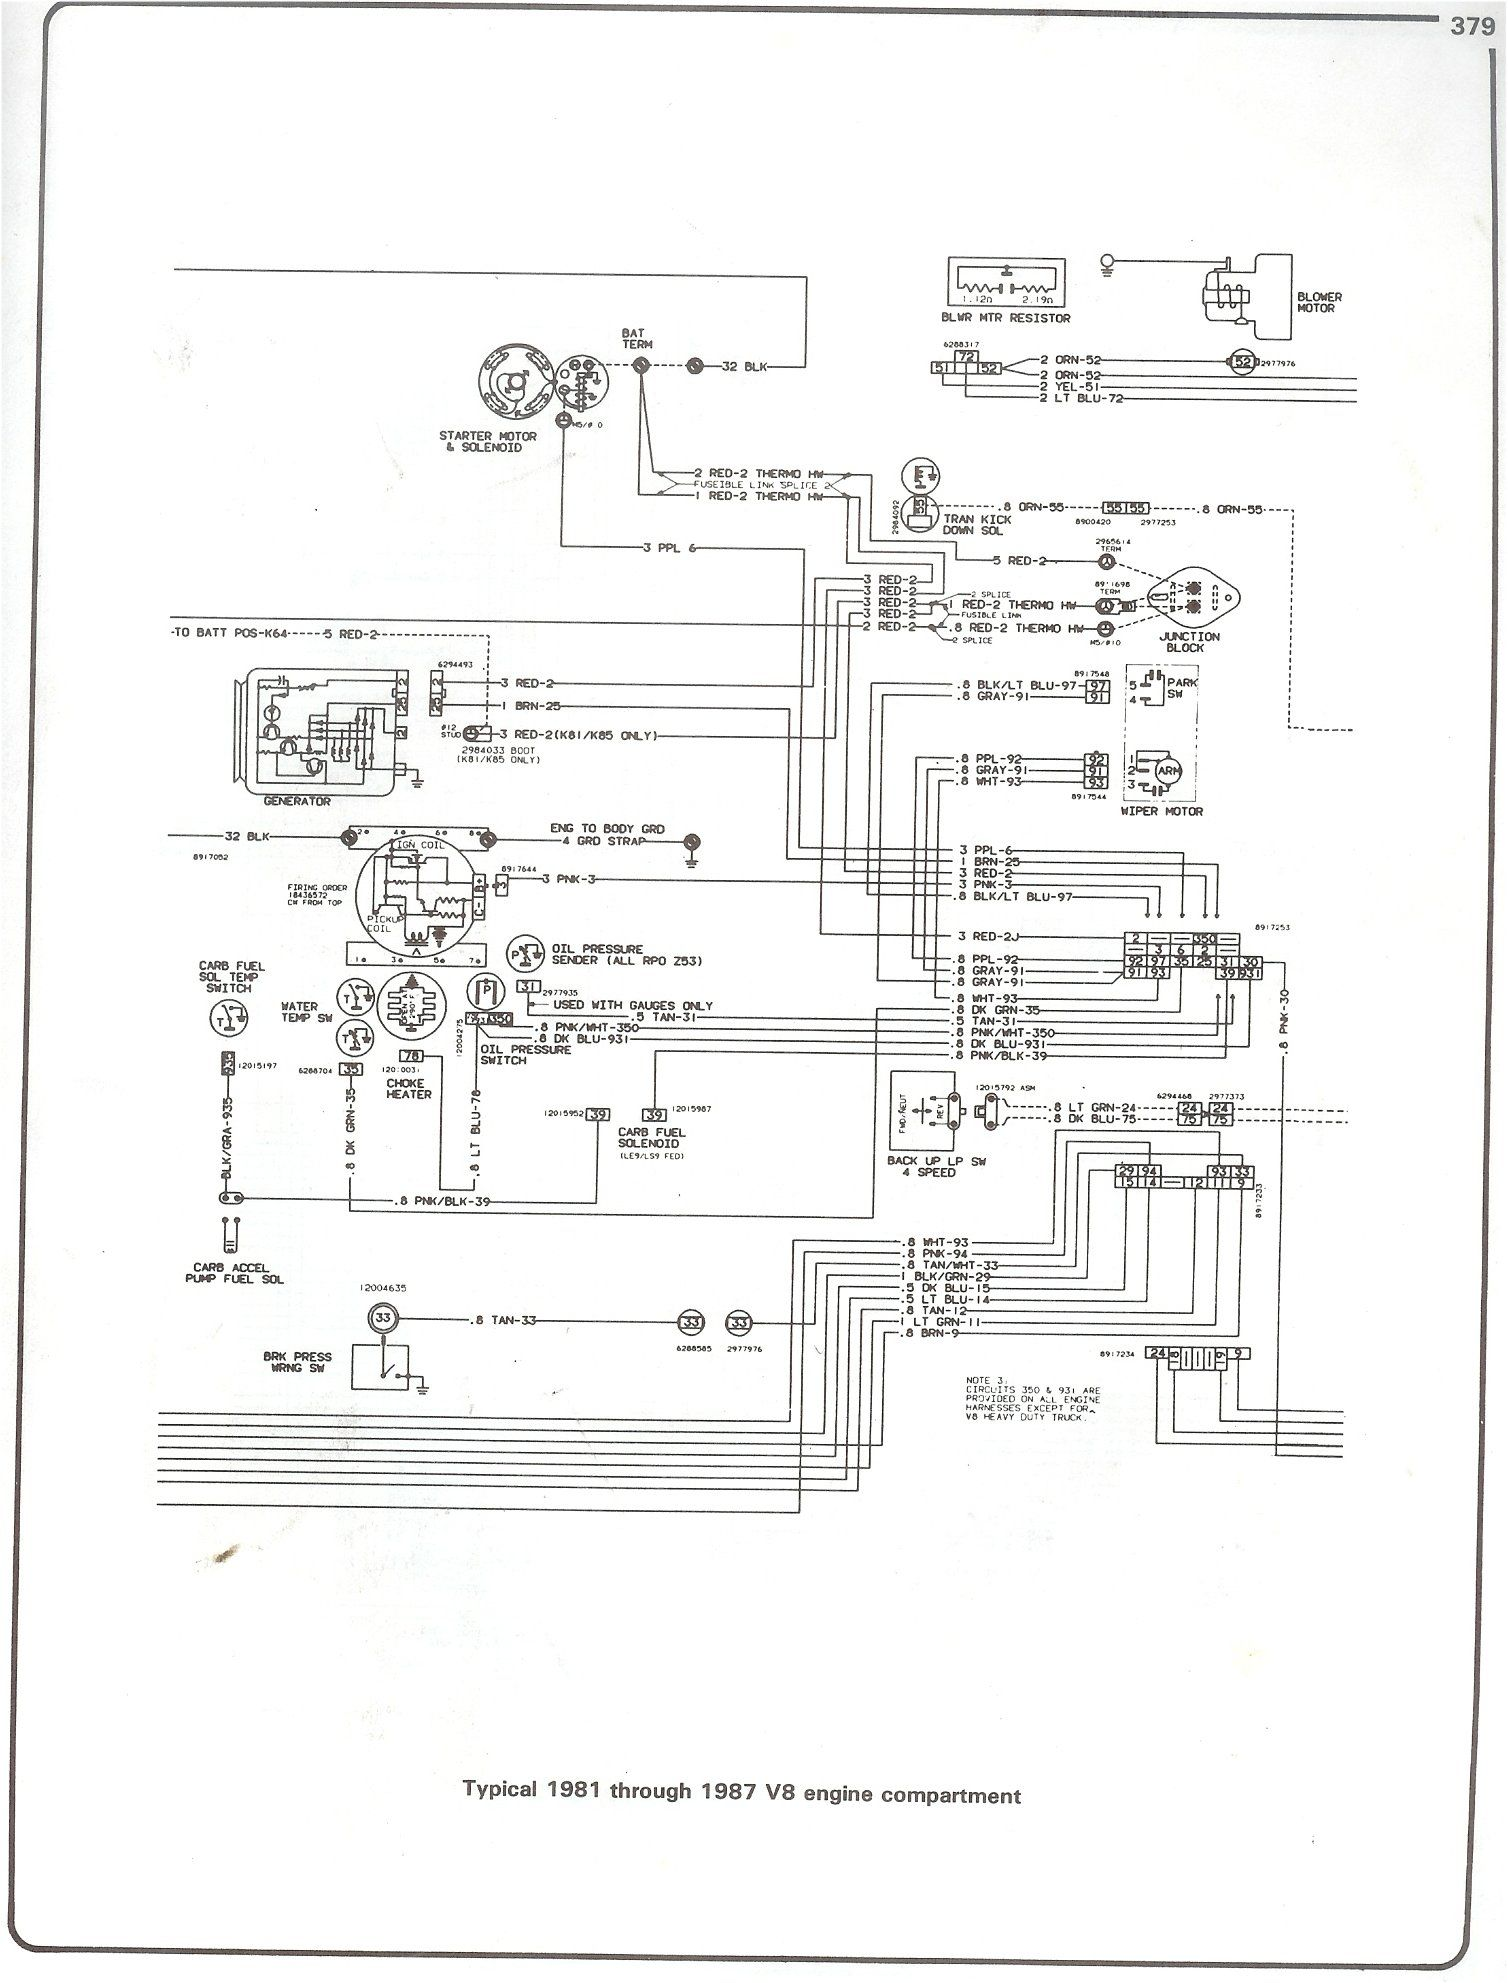 85 Chevy Truck Wiring Diagram Http Www 73 87chevytrucks Com Tech V8 Engine Jpg Chevy Trucks 1979 Chevy Truck Truck Engine